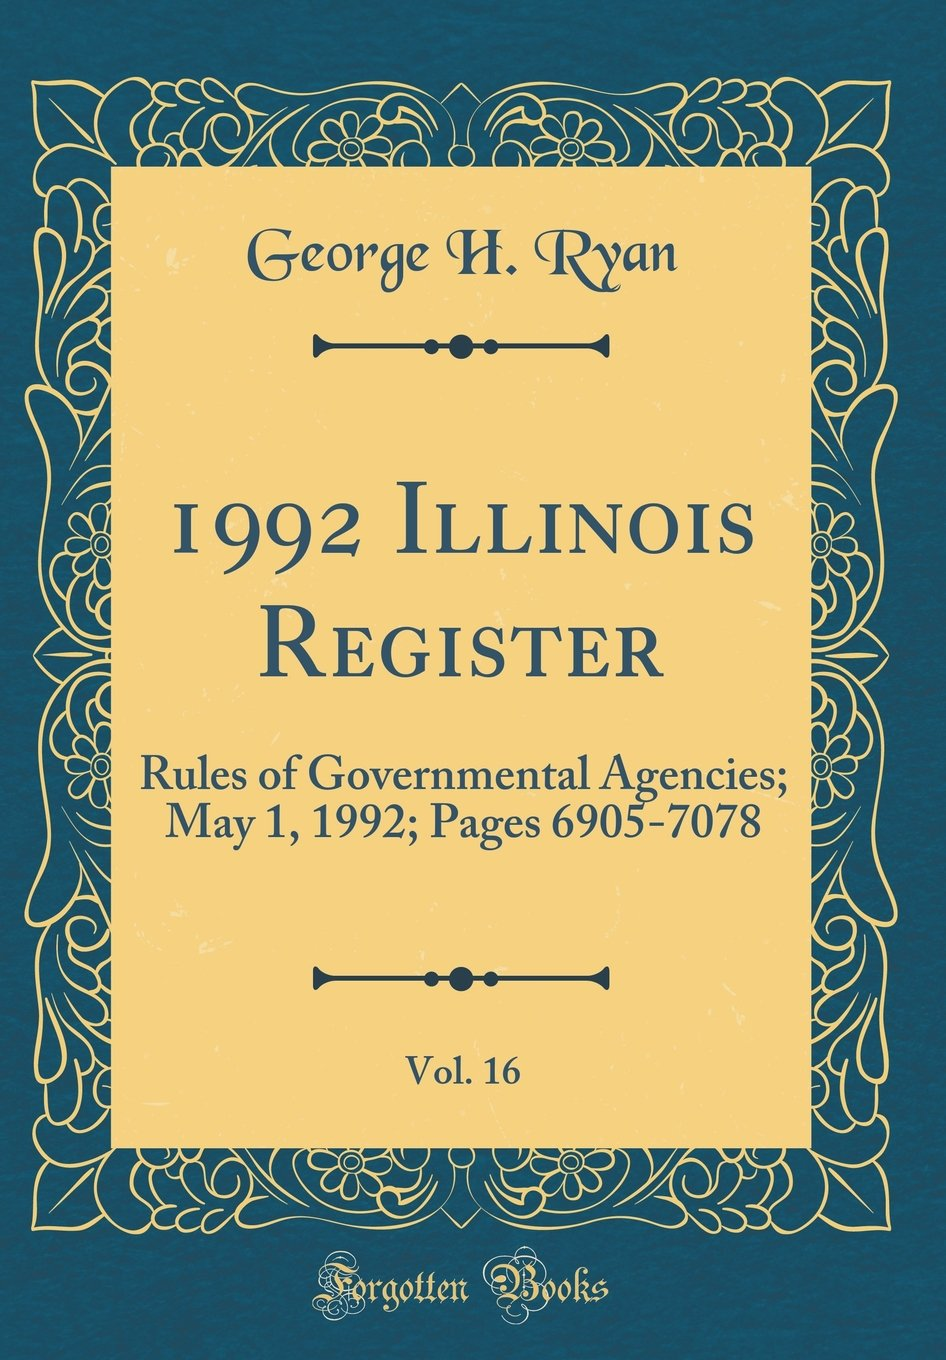 1992 Illinois Register, Vol. 16: Rules of Governmental Agencies; May 1, 1992; Pages 6905-7078 (Classic Reprint) PDF